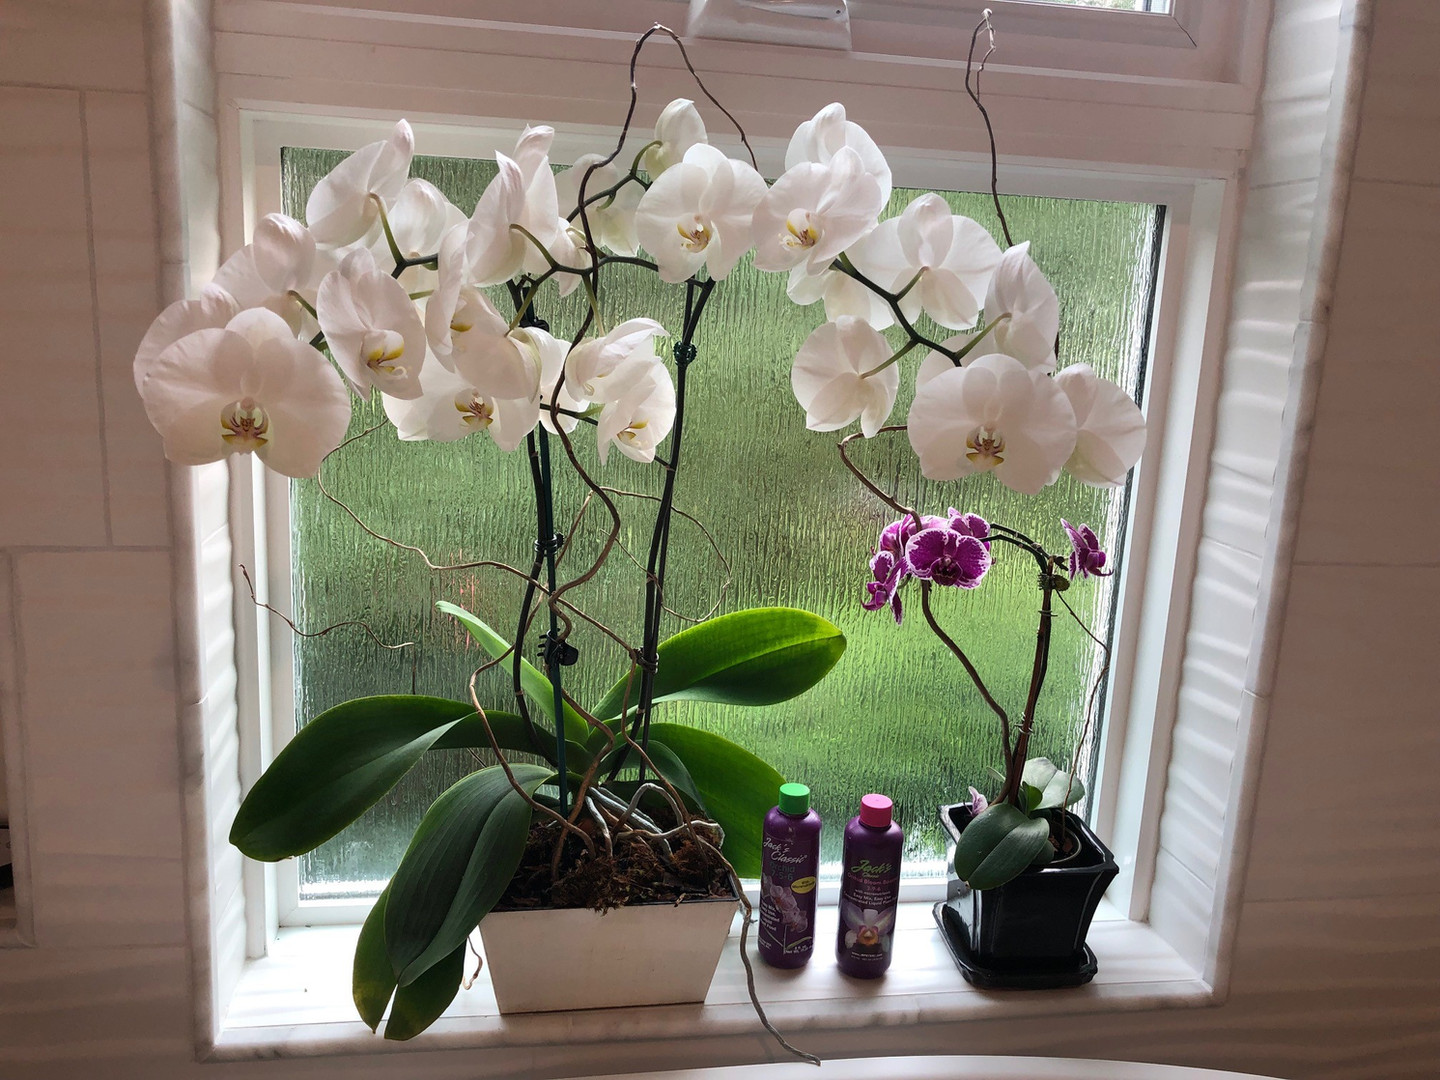 Jack's Orchid_2.jpg